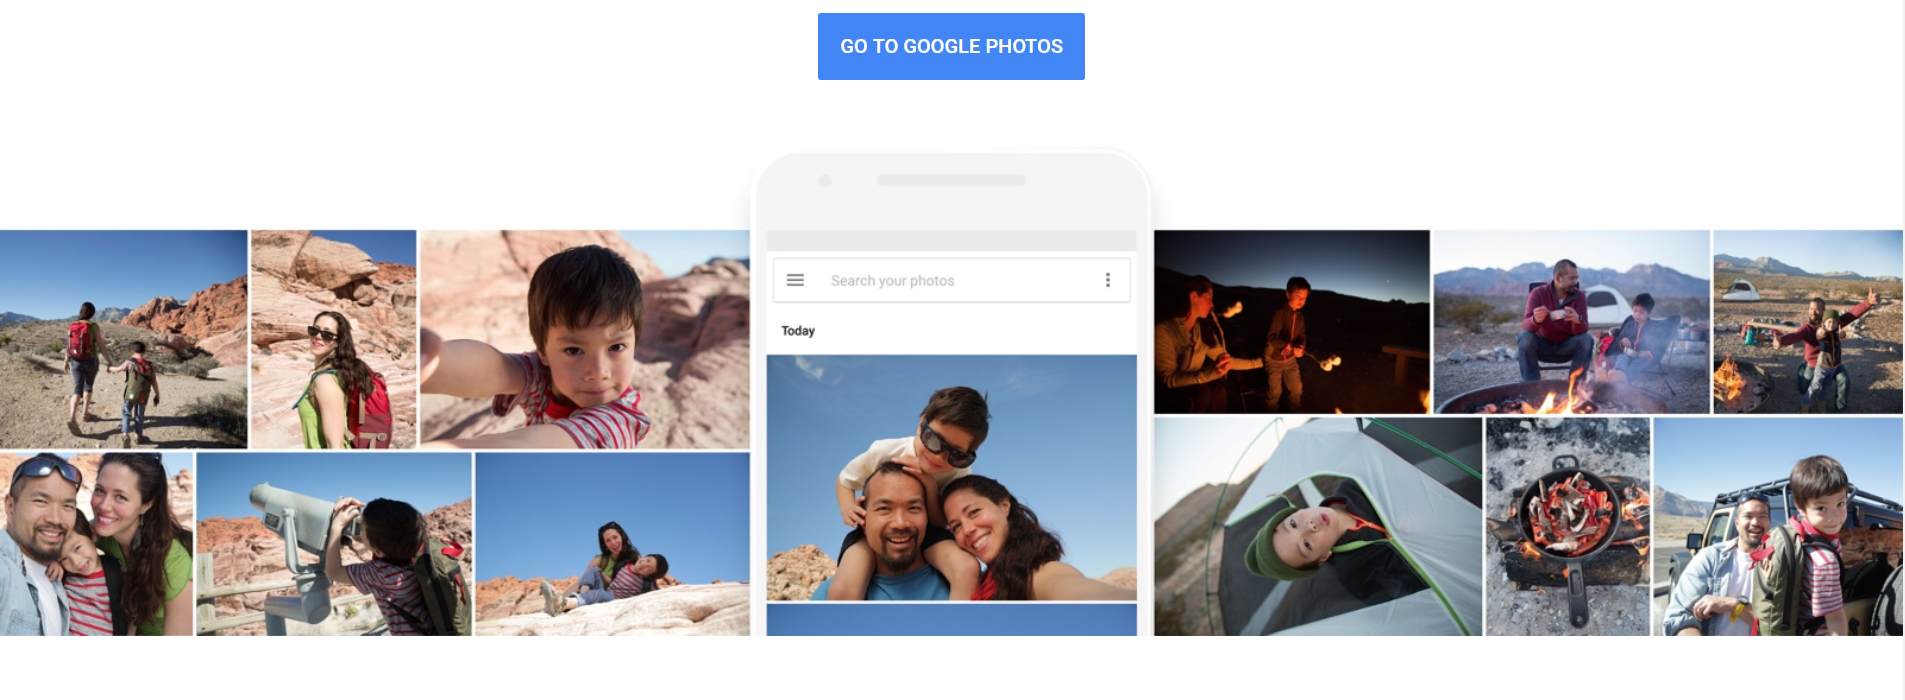 Top 2 Google Photos Alternatives